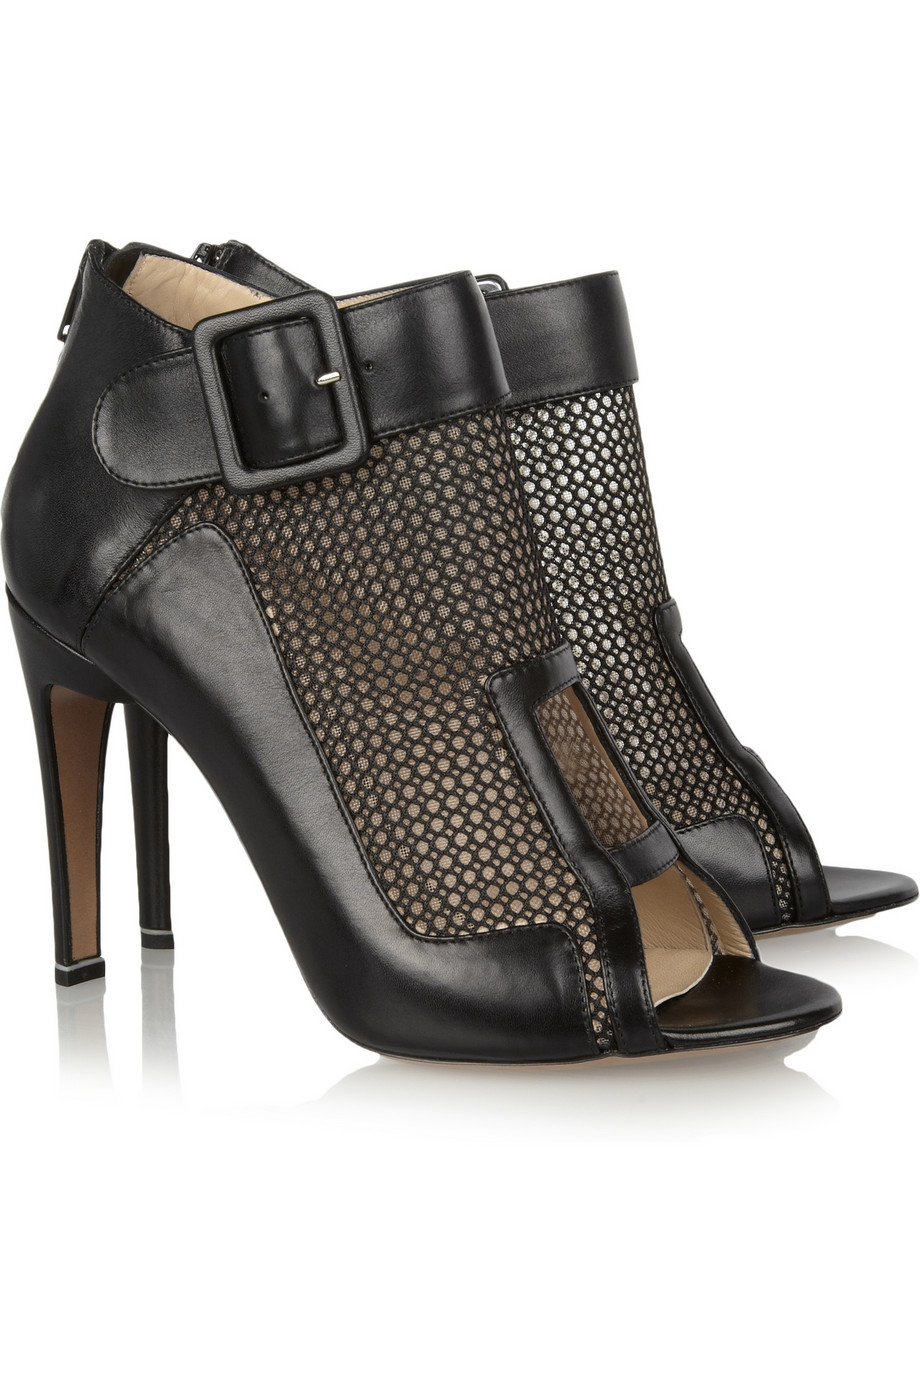 Nicholas Kirkwood Mesh-Paneled Leather Ankle Boots ($300 The Outnet)